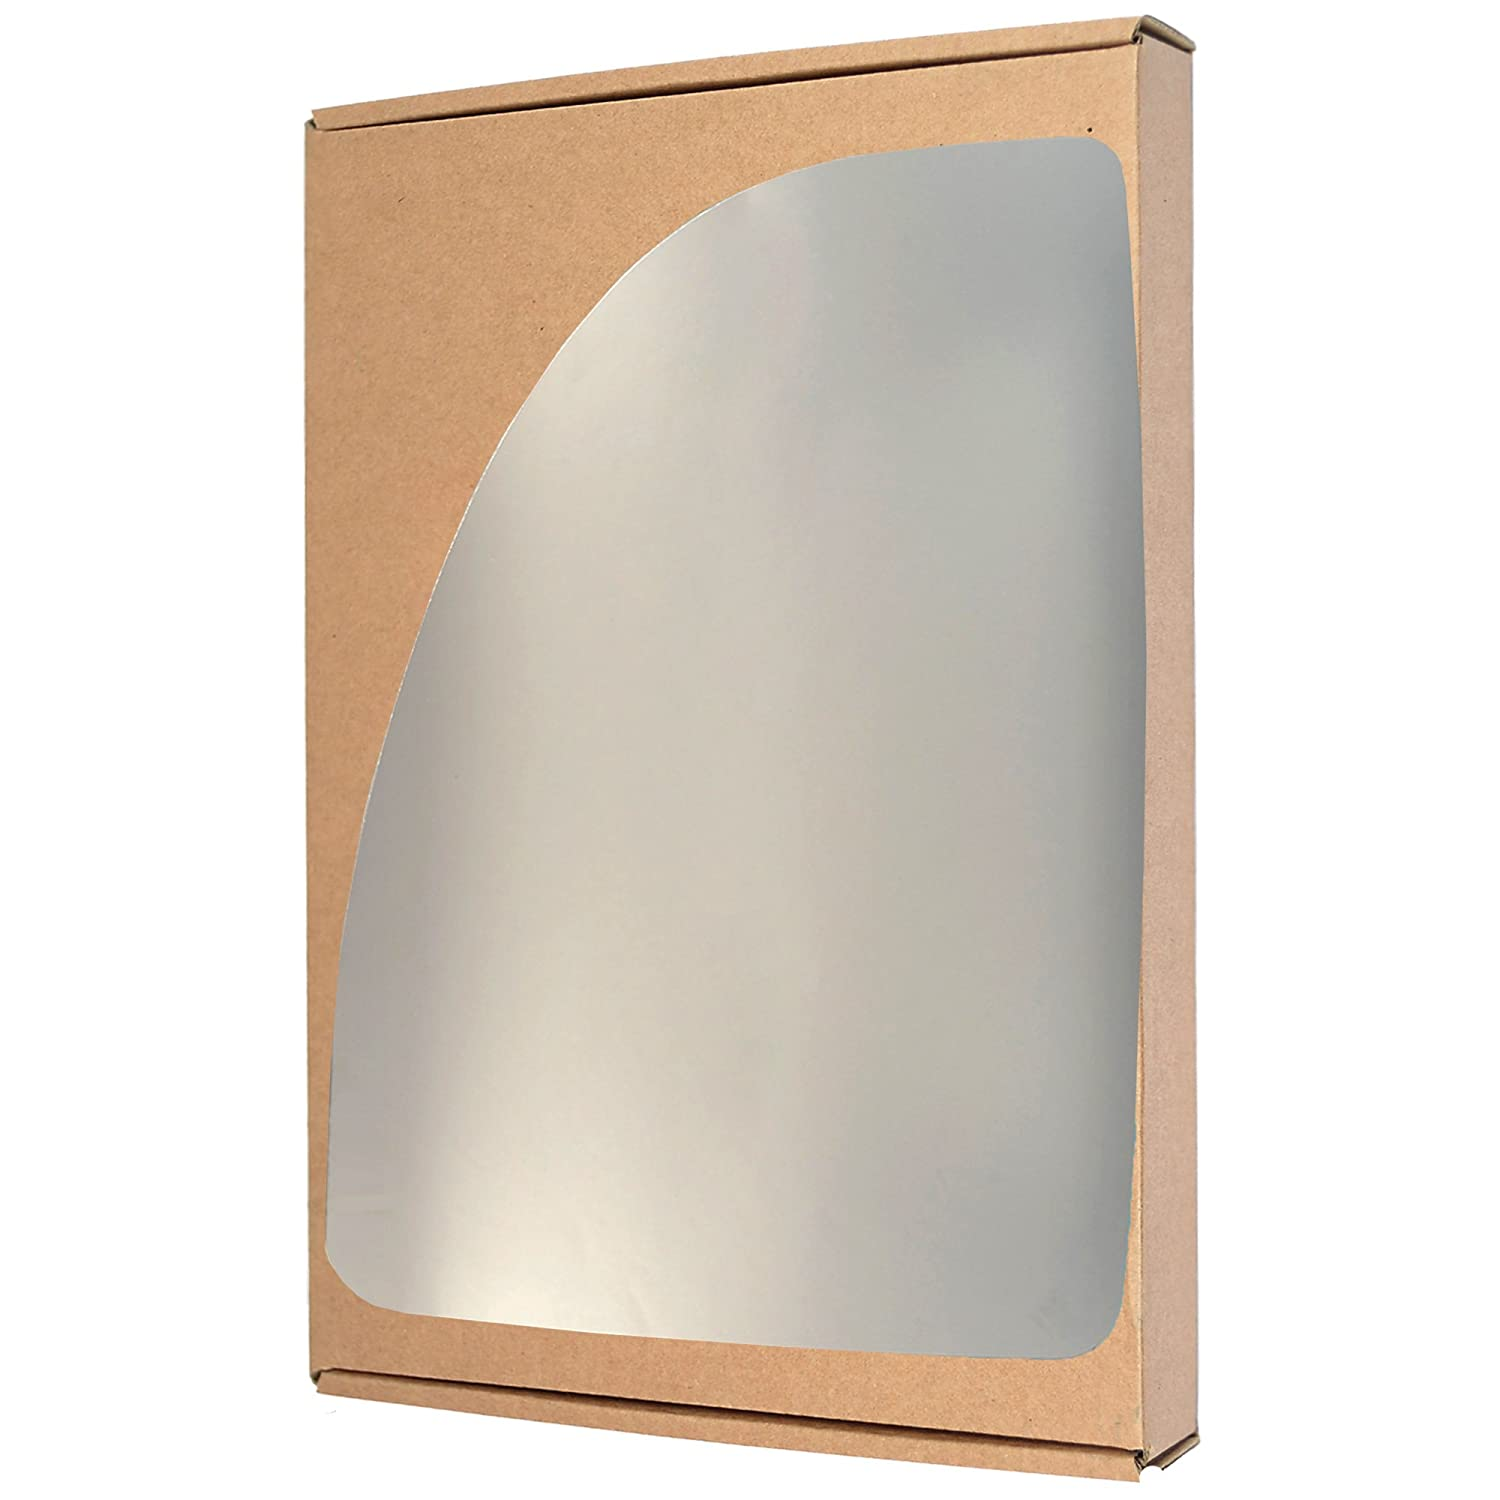 Left passegner side Silver Wing mirror glass # PeBox/m02-1905880/590